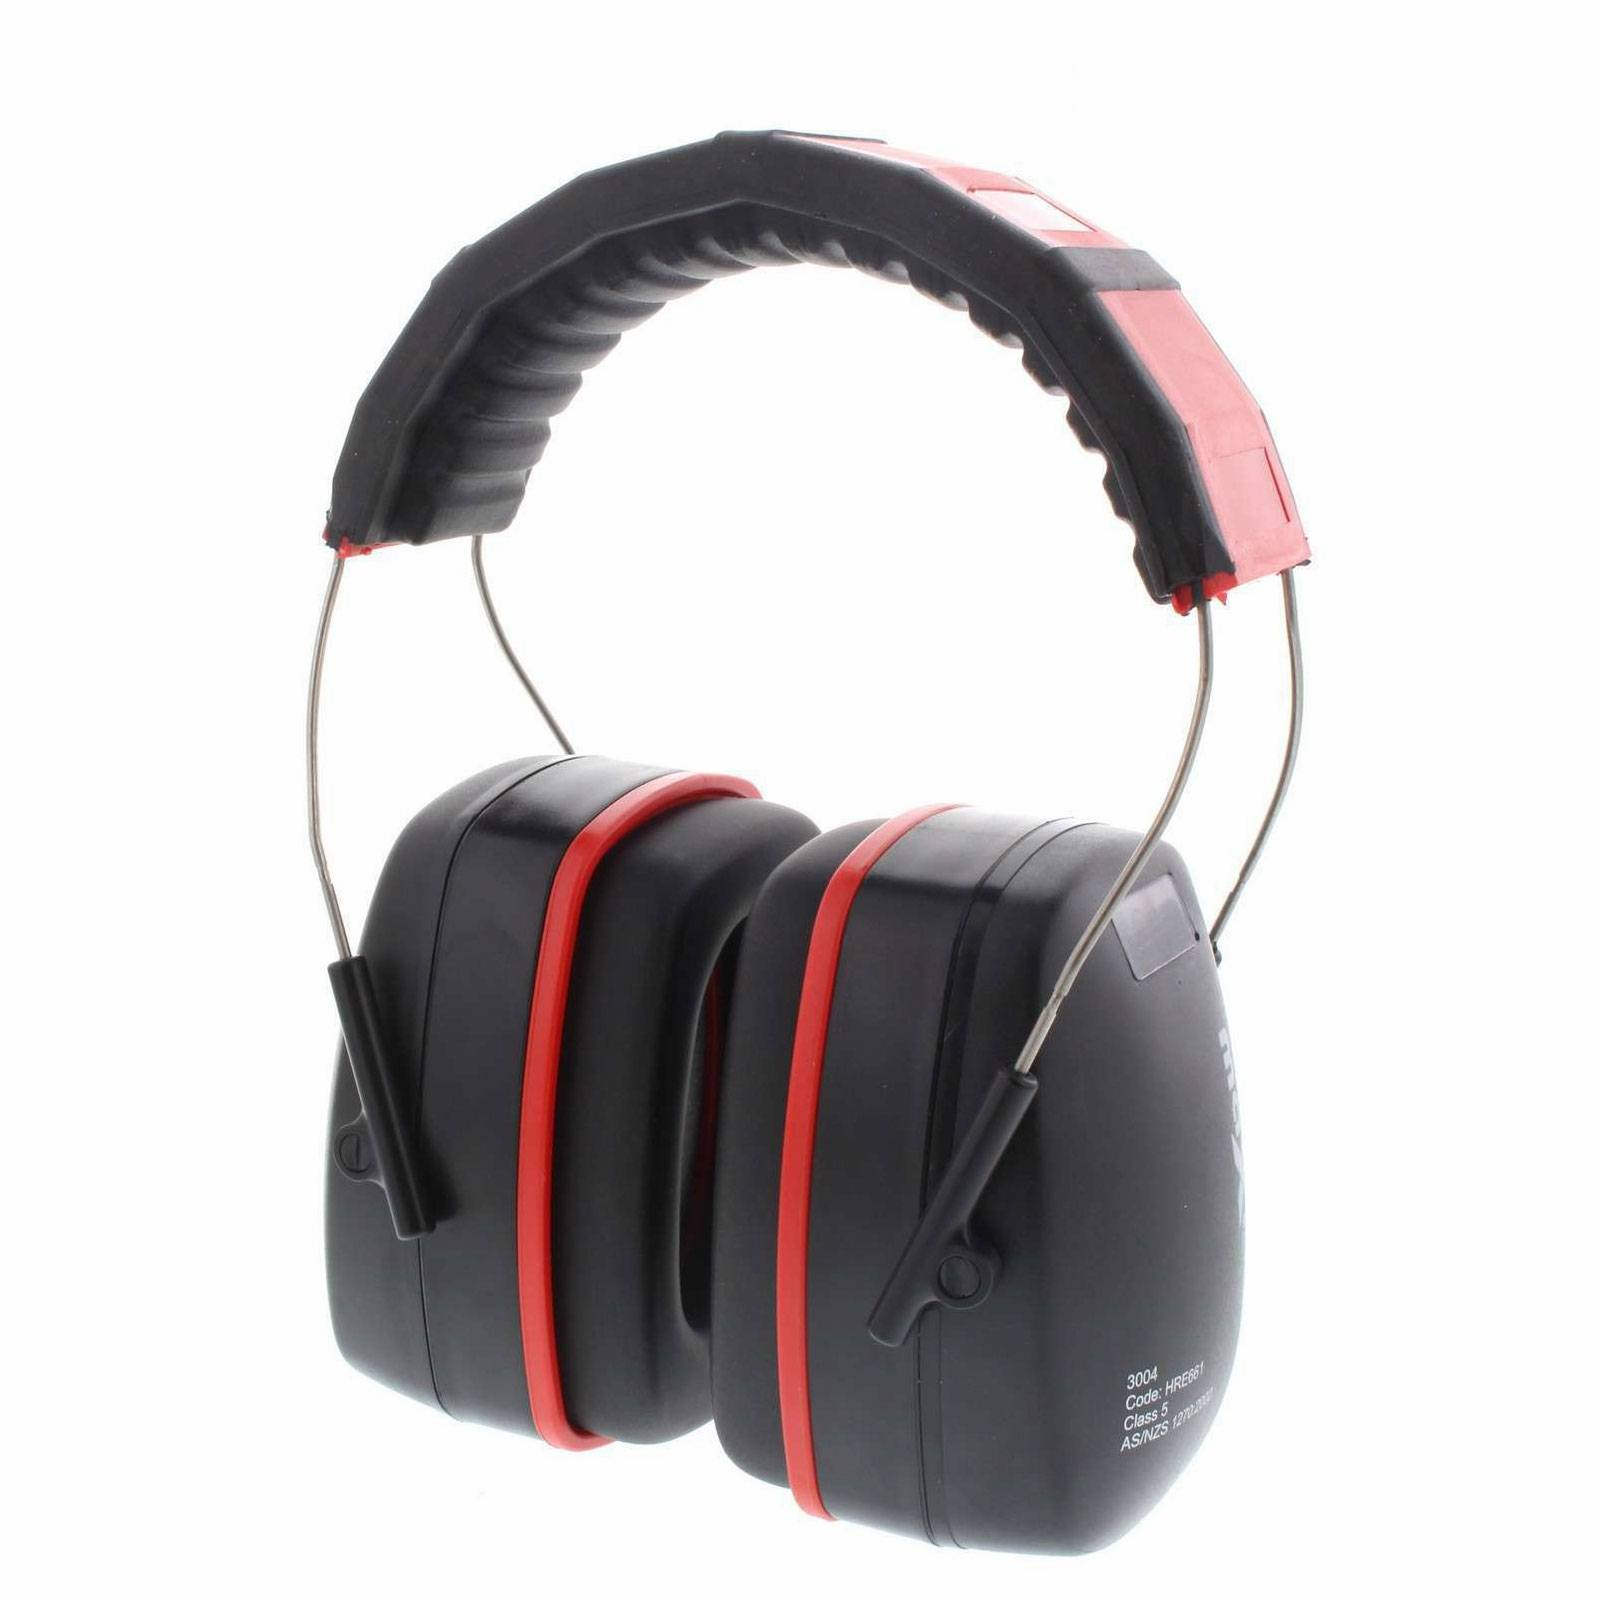 Maxisafe Ear Muffs Worksite Jobsite Hearing Protection